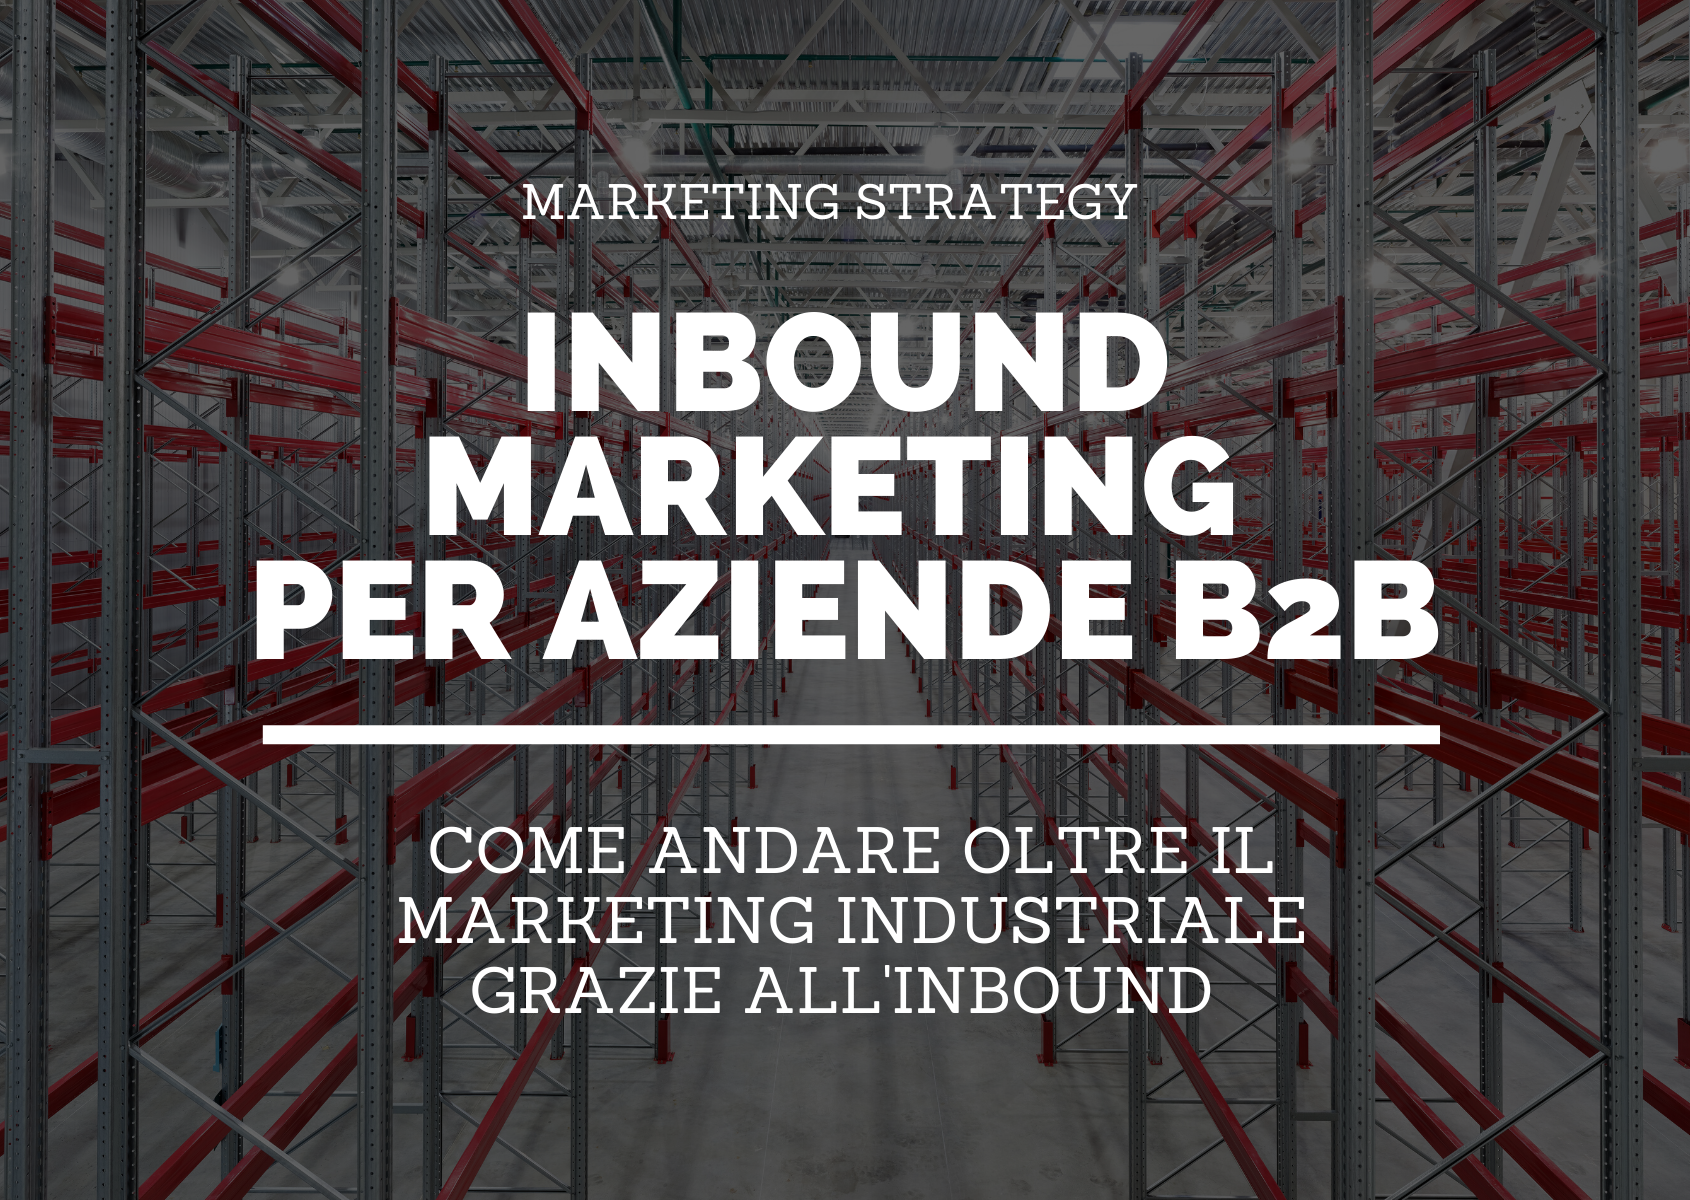 INBOUND MARKETING PER AZIENDE B2B